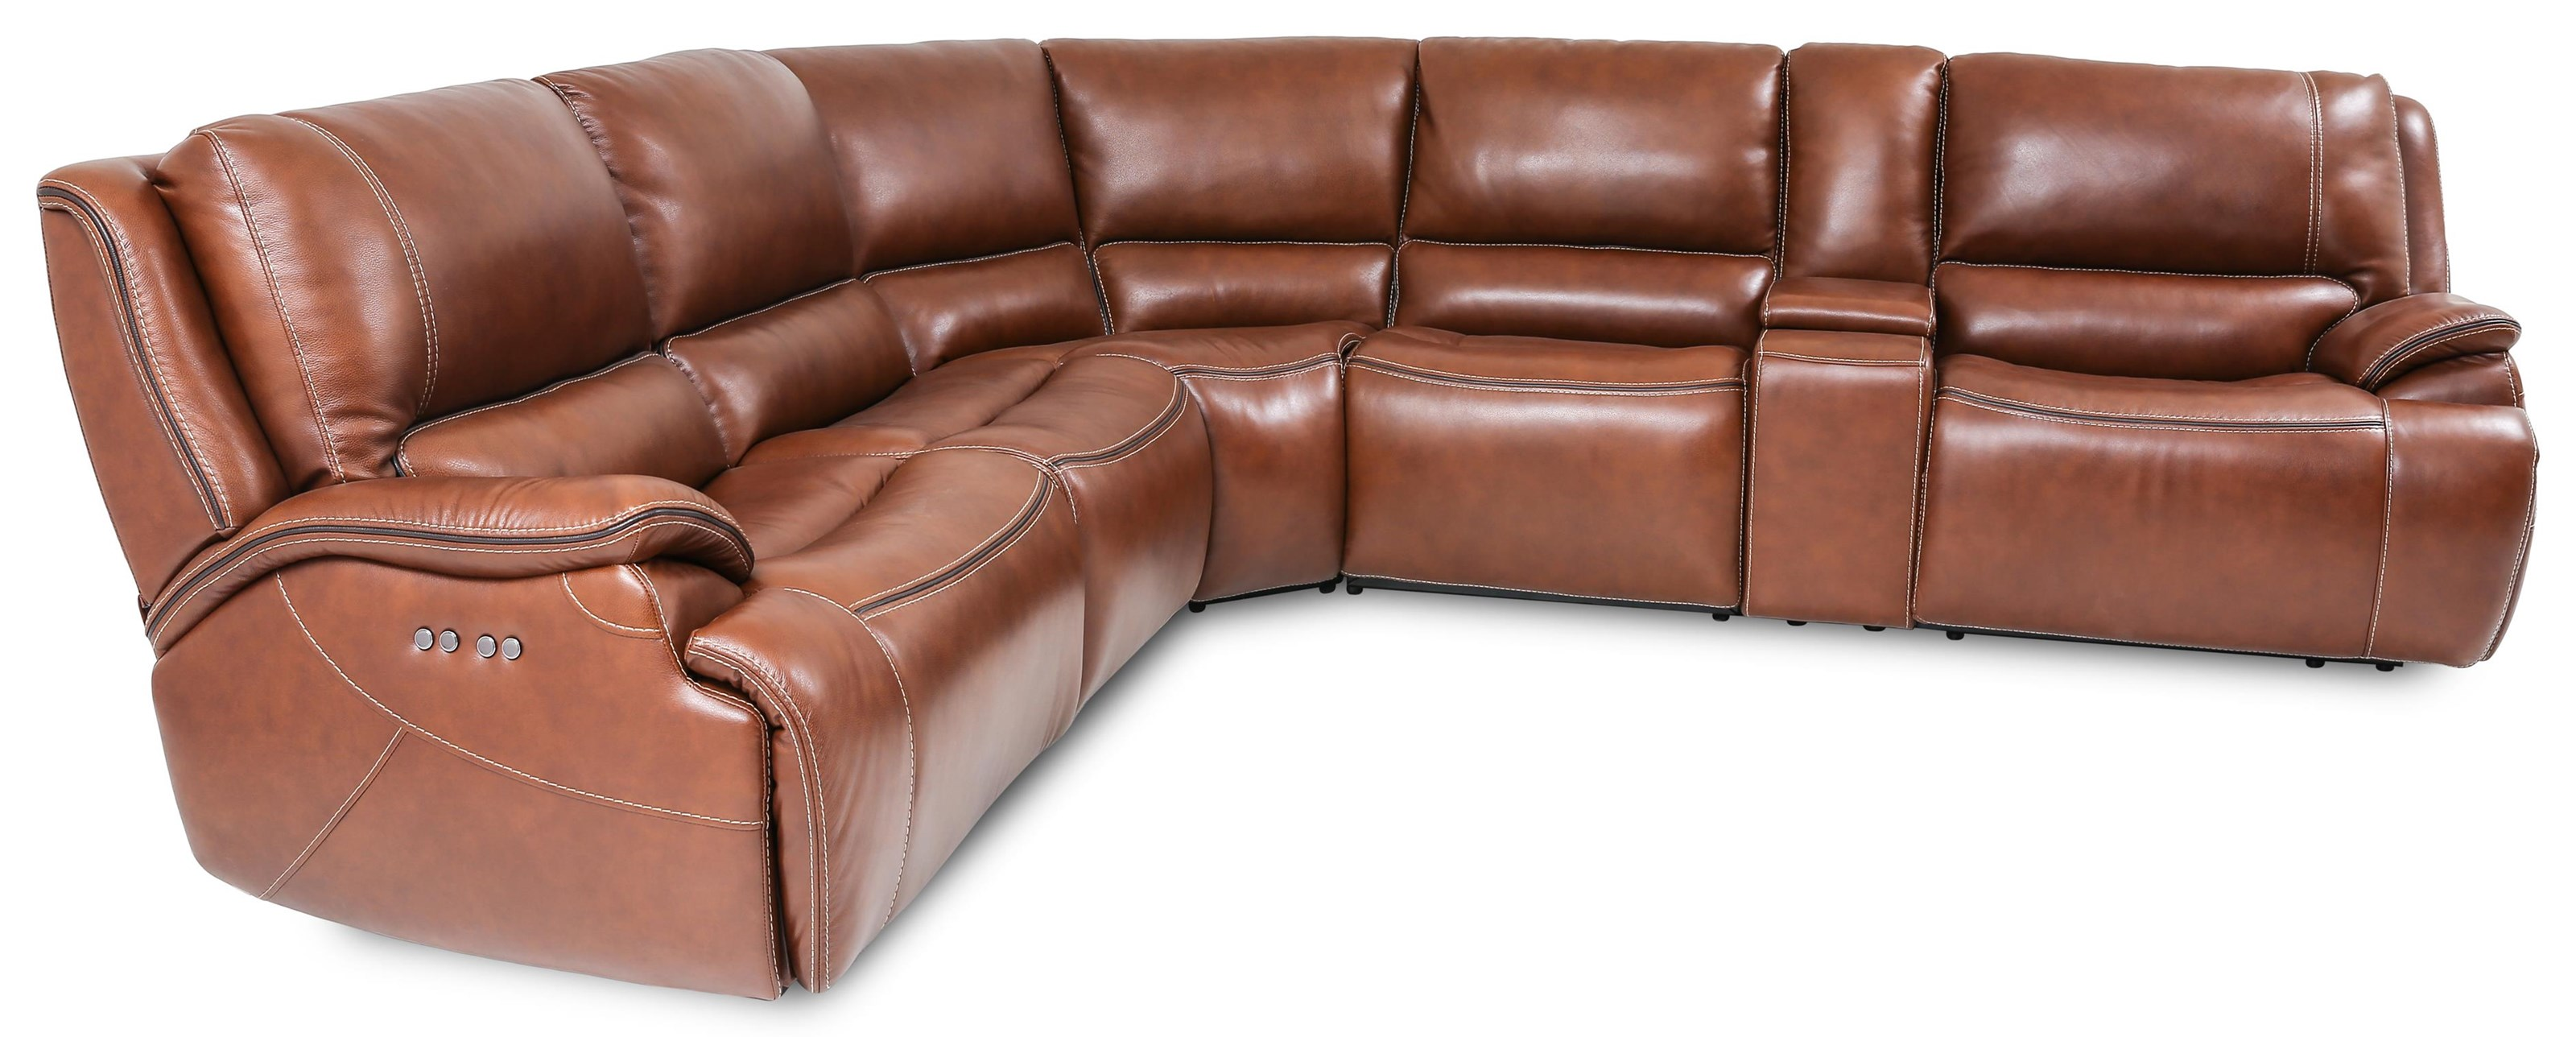 90019 6-Piece Power Reclining Sectional Sofa with by Cheers at Beck's Furniture